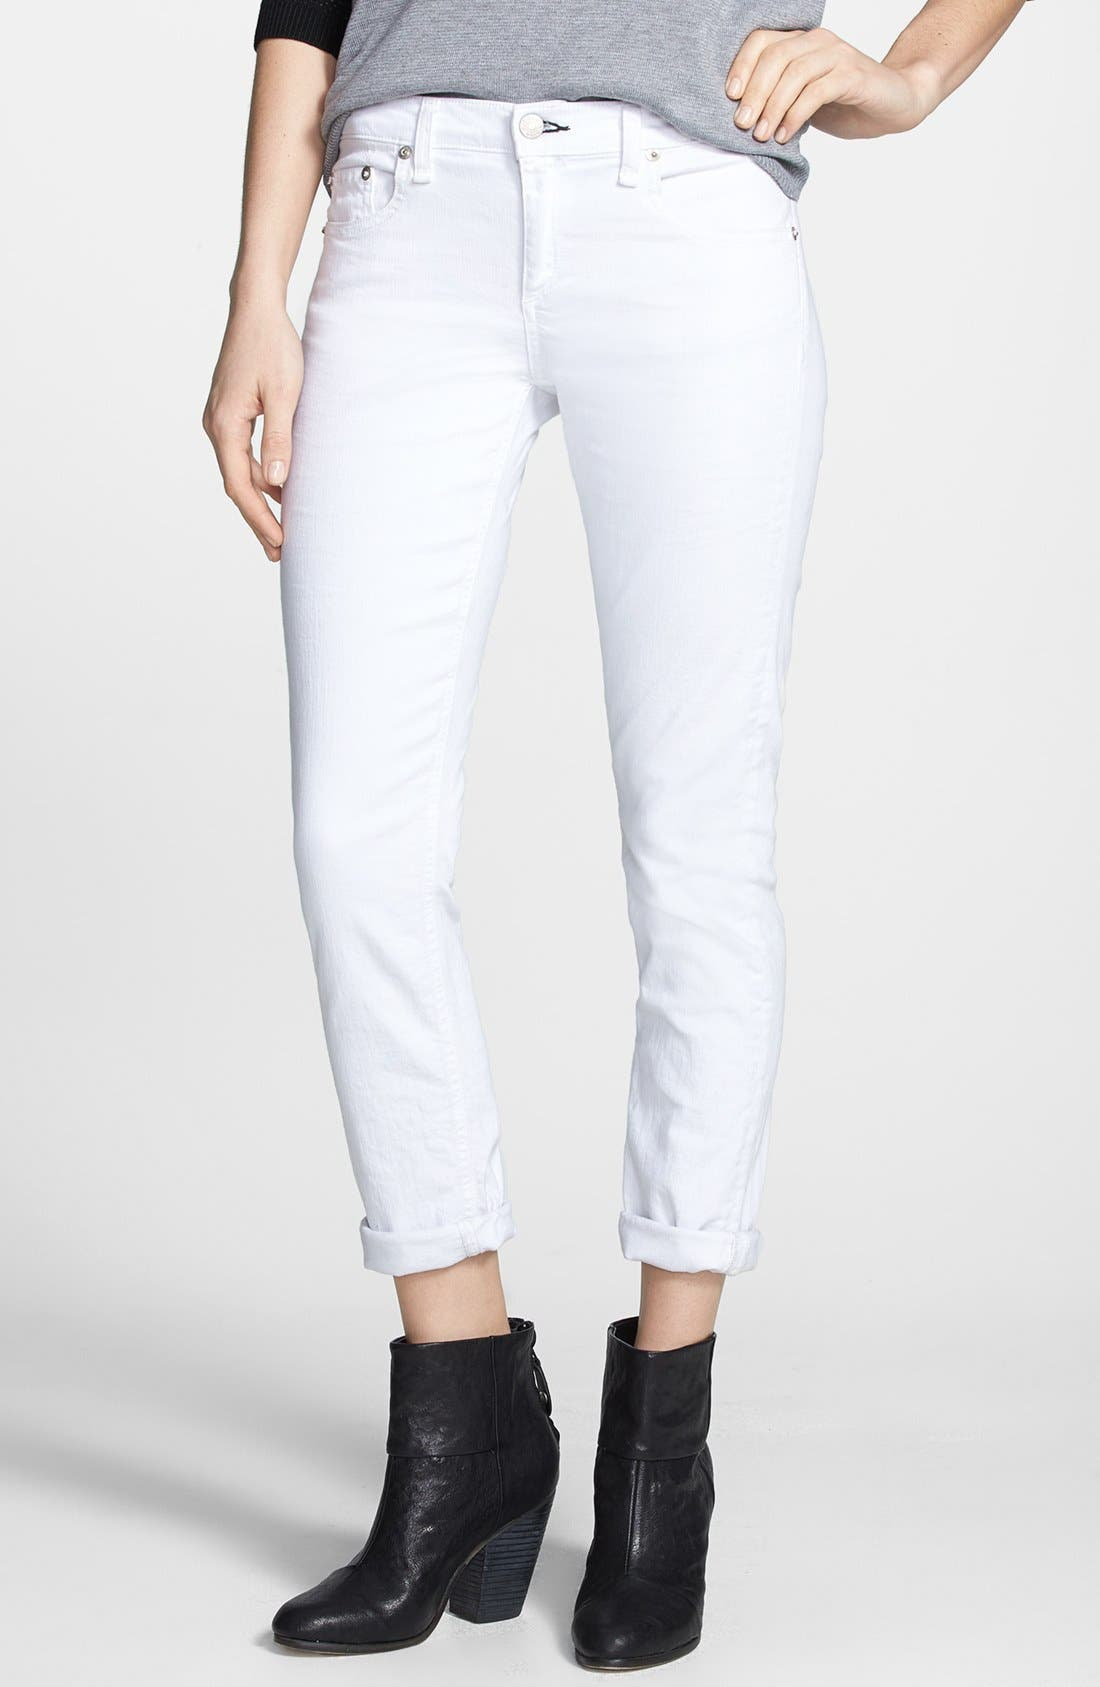 Main Image - rag & bone/JEAN 'The Dre' Skinny Jeans (Aged Bright White)